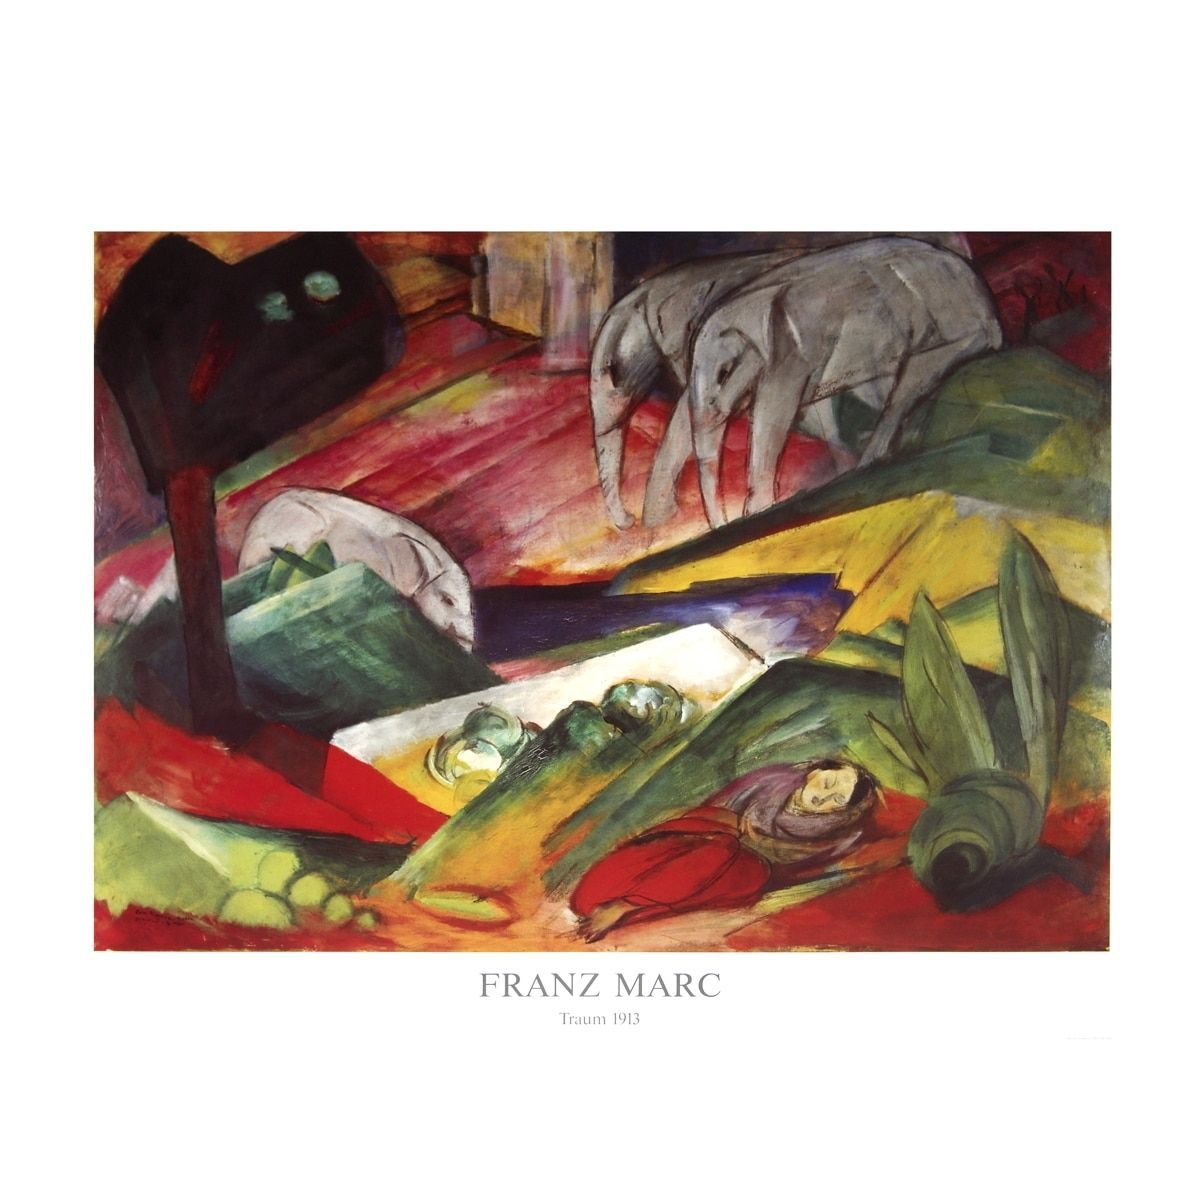 Refurbished Franz Marc 'The ' Offset Lithograph, 27.5 x 35.5 inches